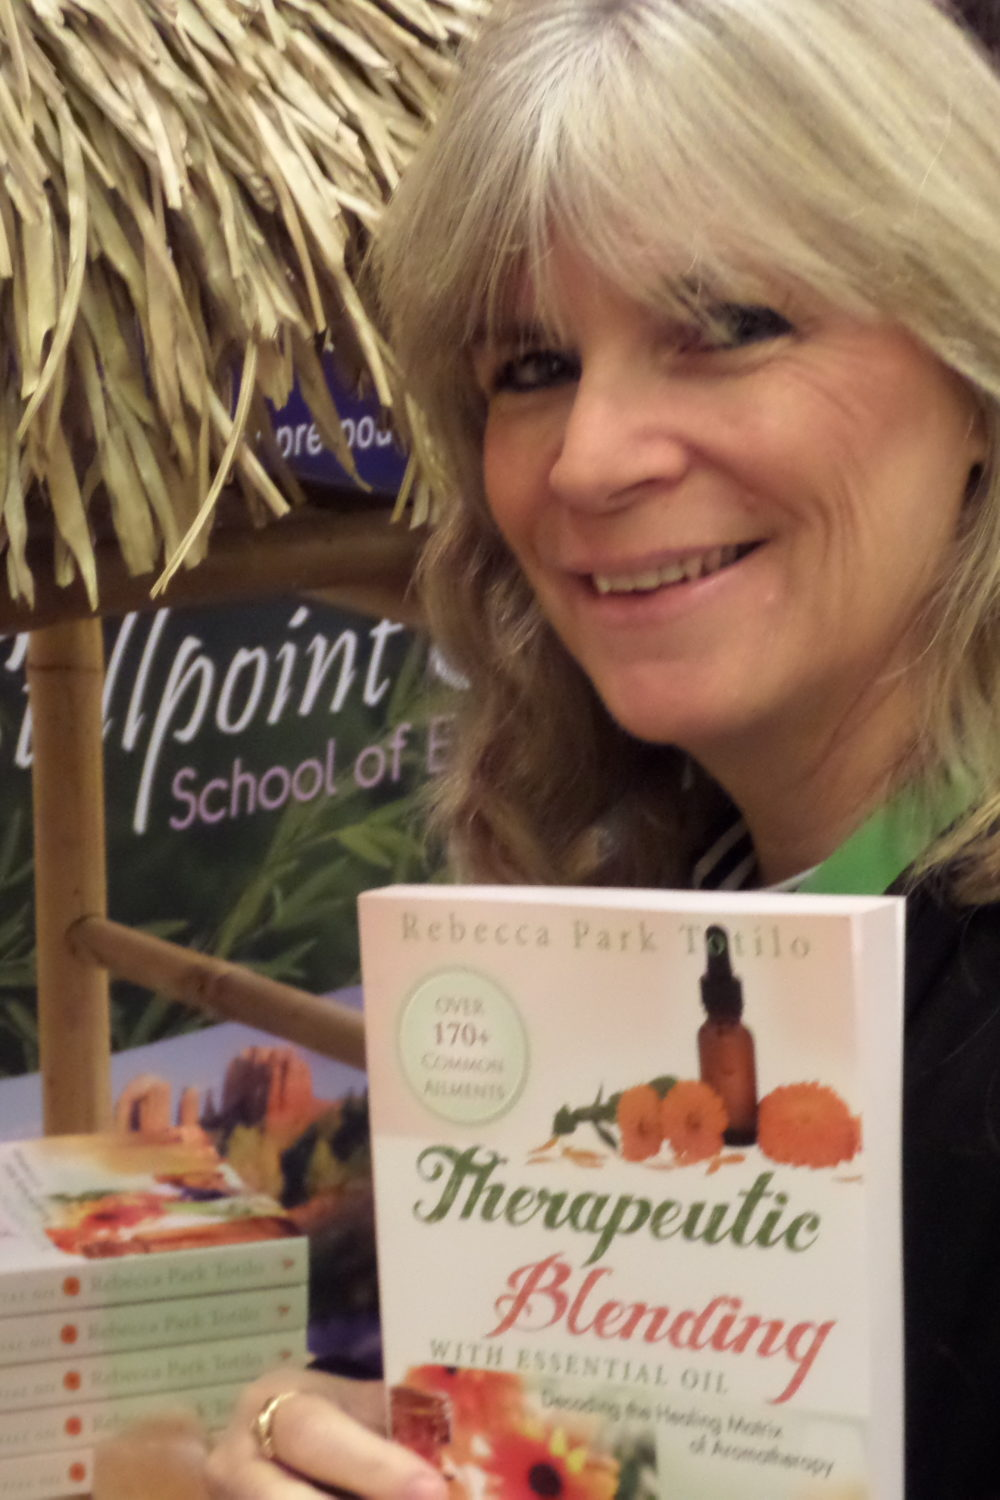 Aromatherapy and Essential Oil Books By Rebecca Park Totilo